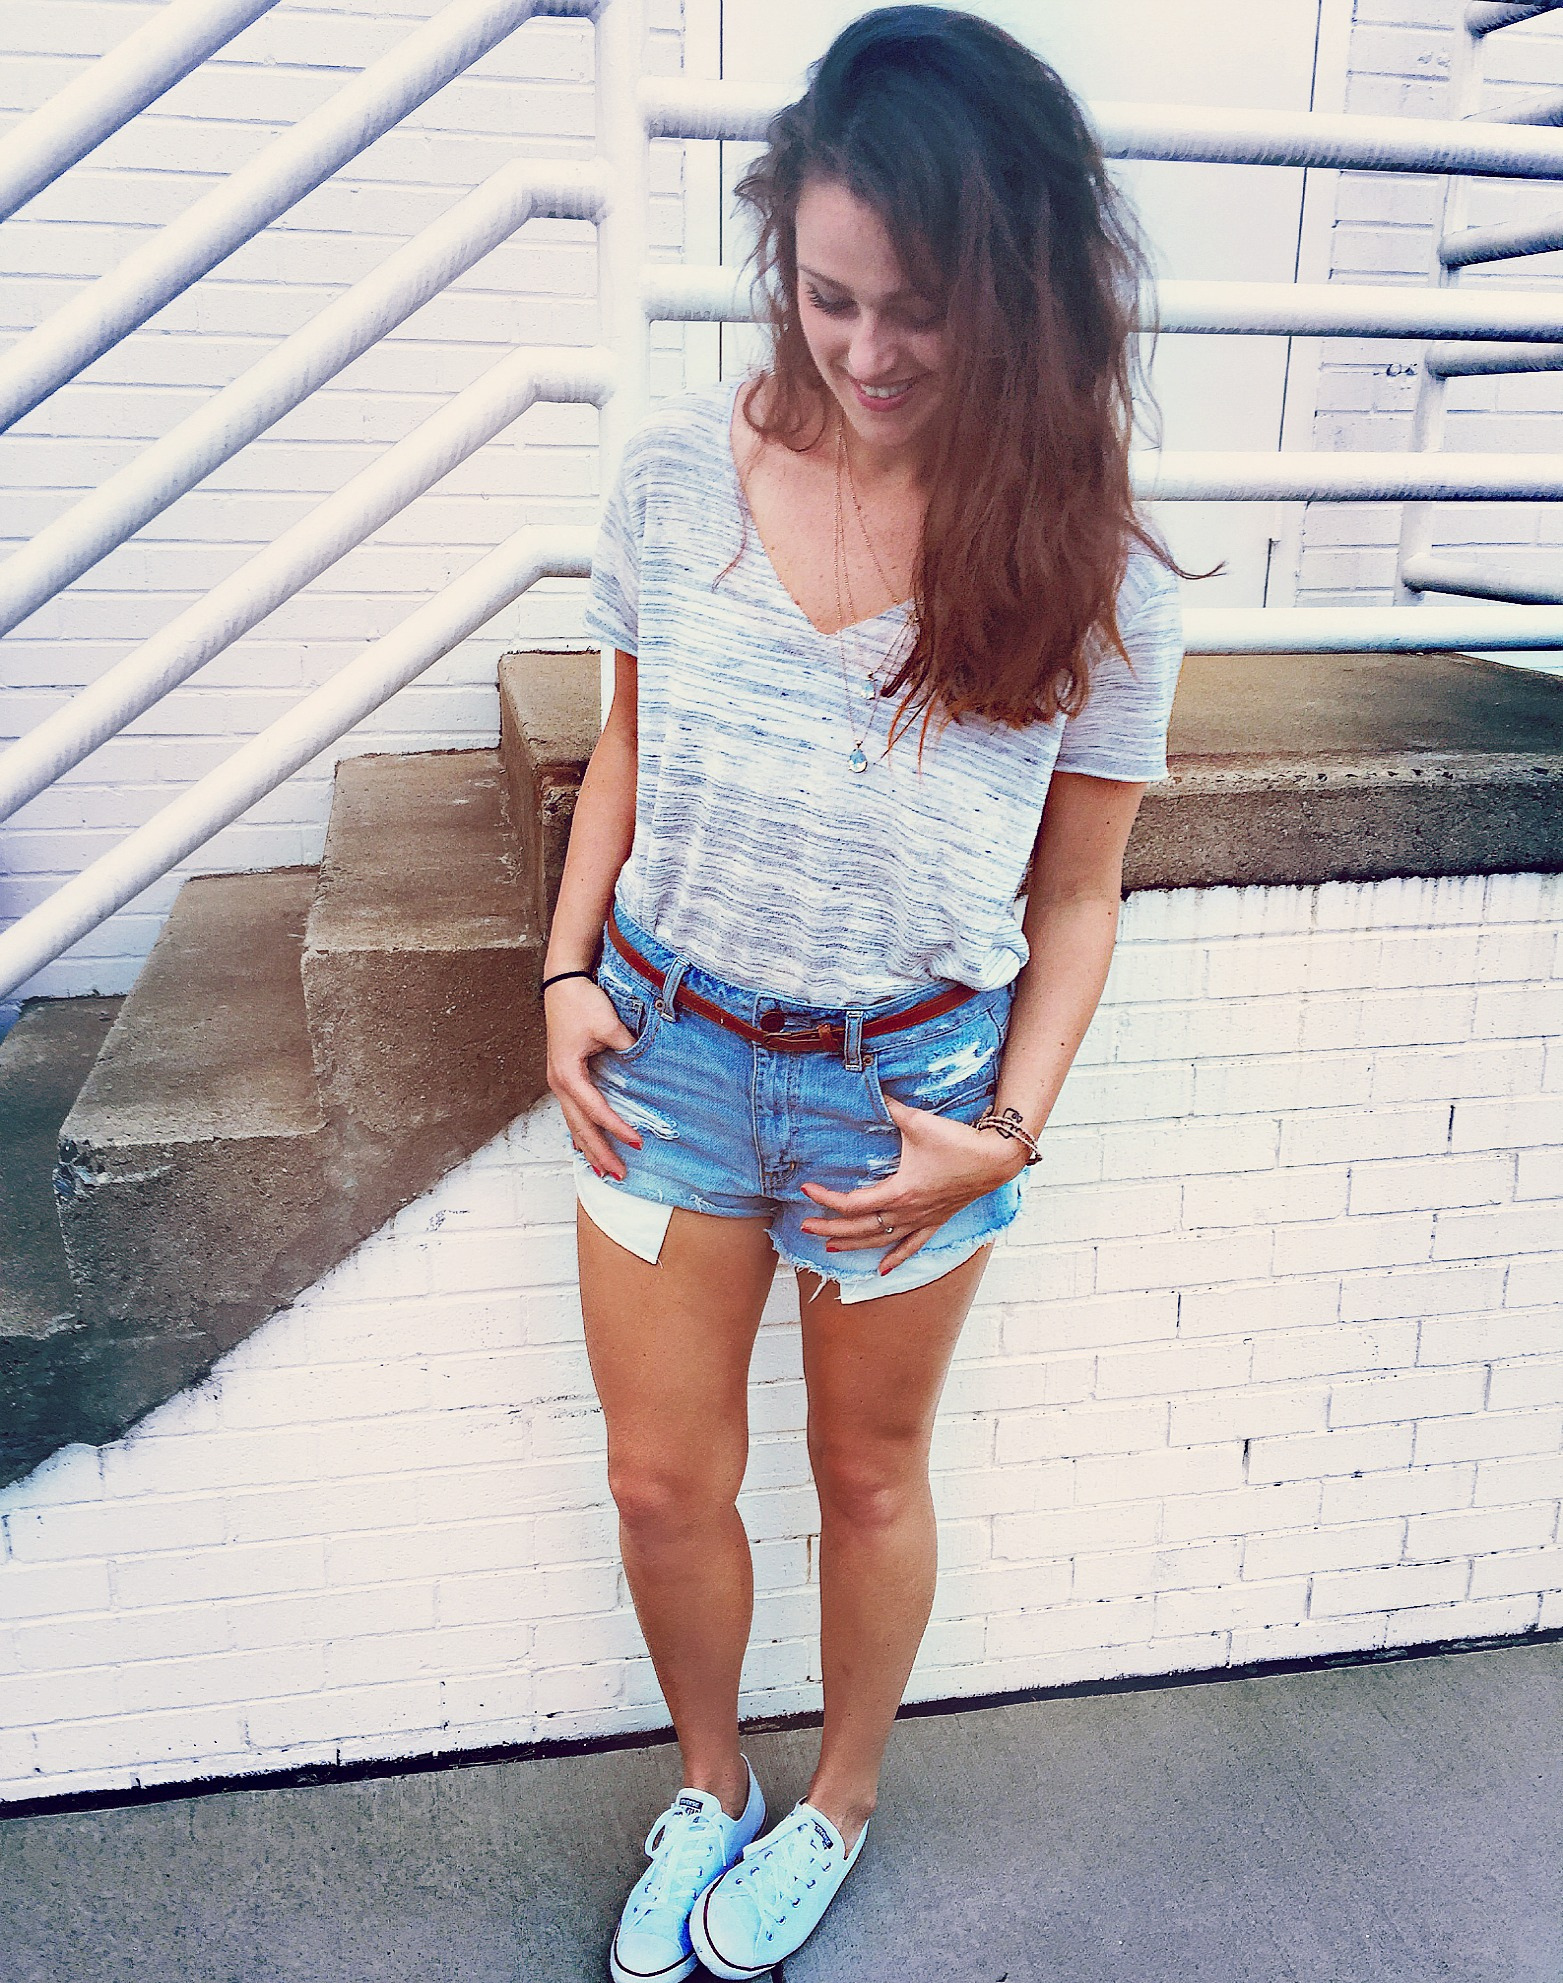 Outfit: TOP: URBANOUTFITTERS SHORTS: AMERICAN EAGLE SHOES: CONVERSE BELT & NECKLACE: SIMPLYTARALYNNCOLLECION